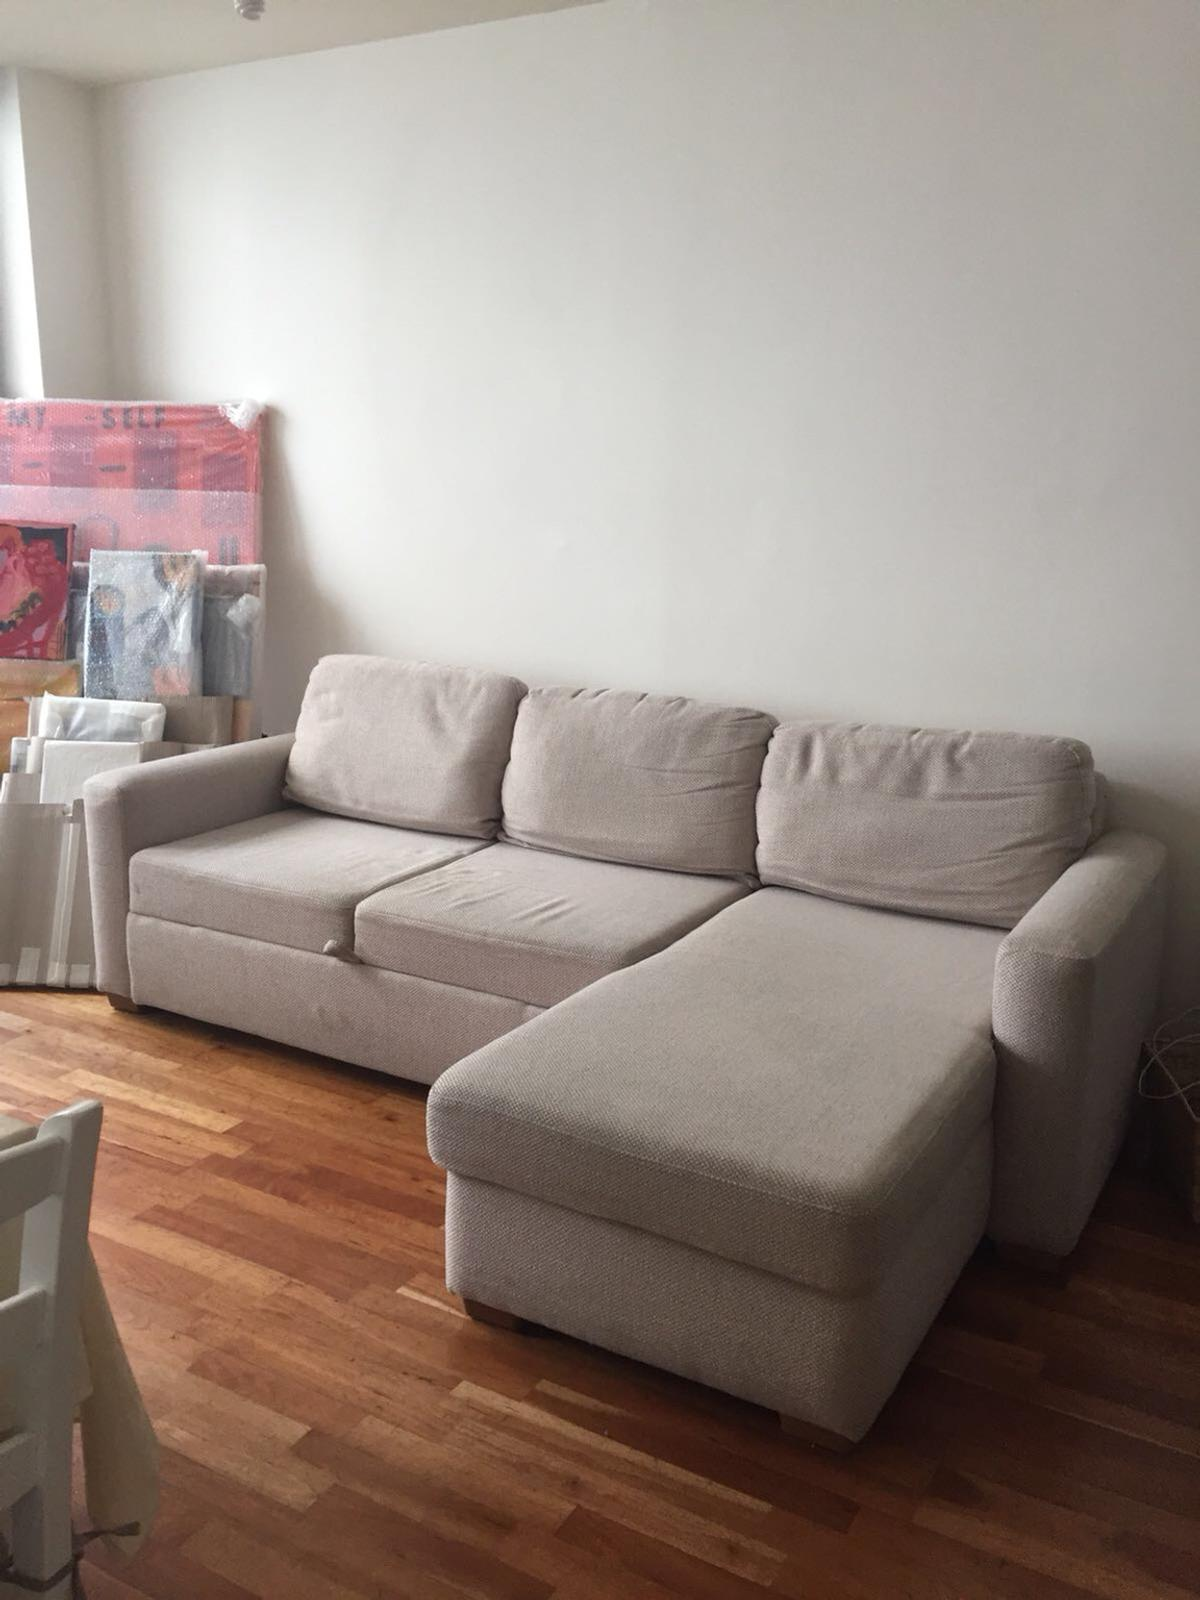 Cool John Lewis Sacha Large Sofa Bed In E1 London For 800 00 For Gmtry Best Dining Table And Chair Ideas Images Gmtryco